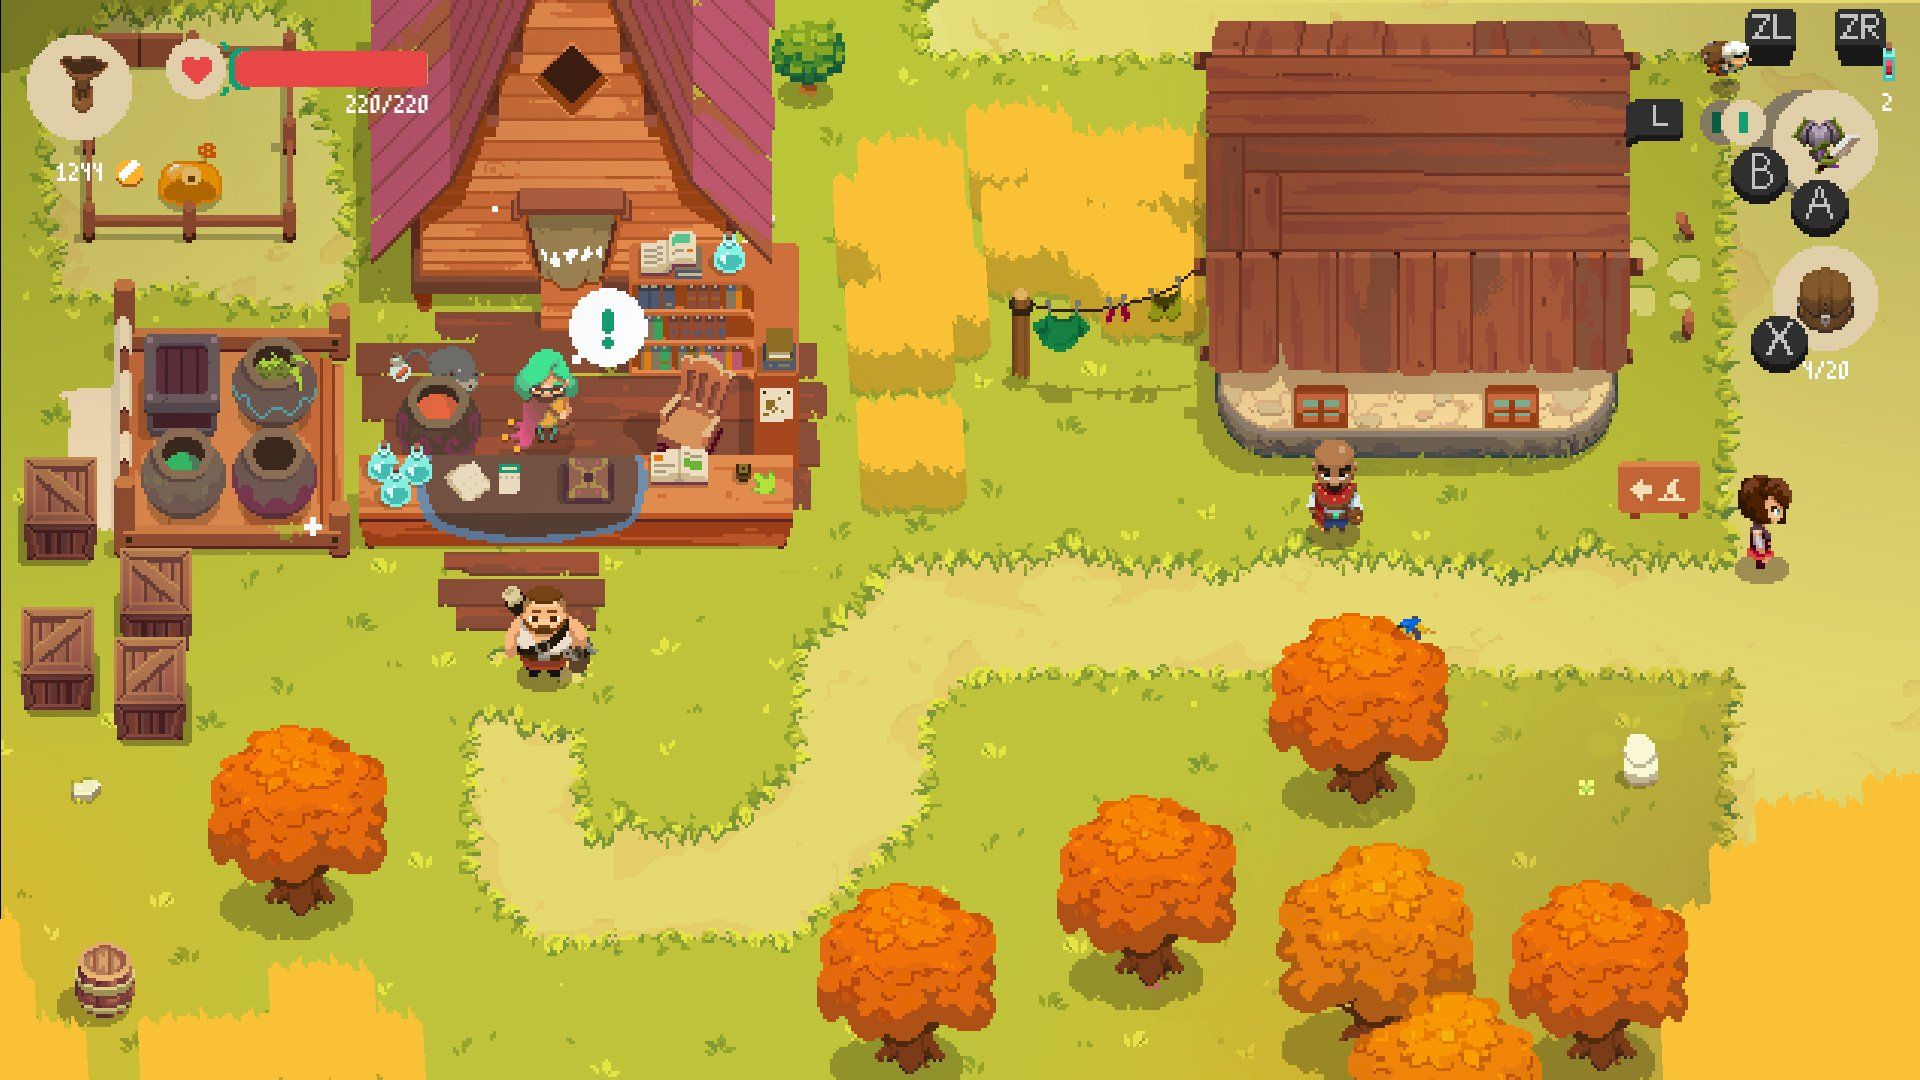 Dungeoncrawling shopkeeper RPG Moonlighter hits Switch in